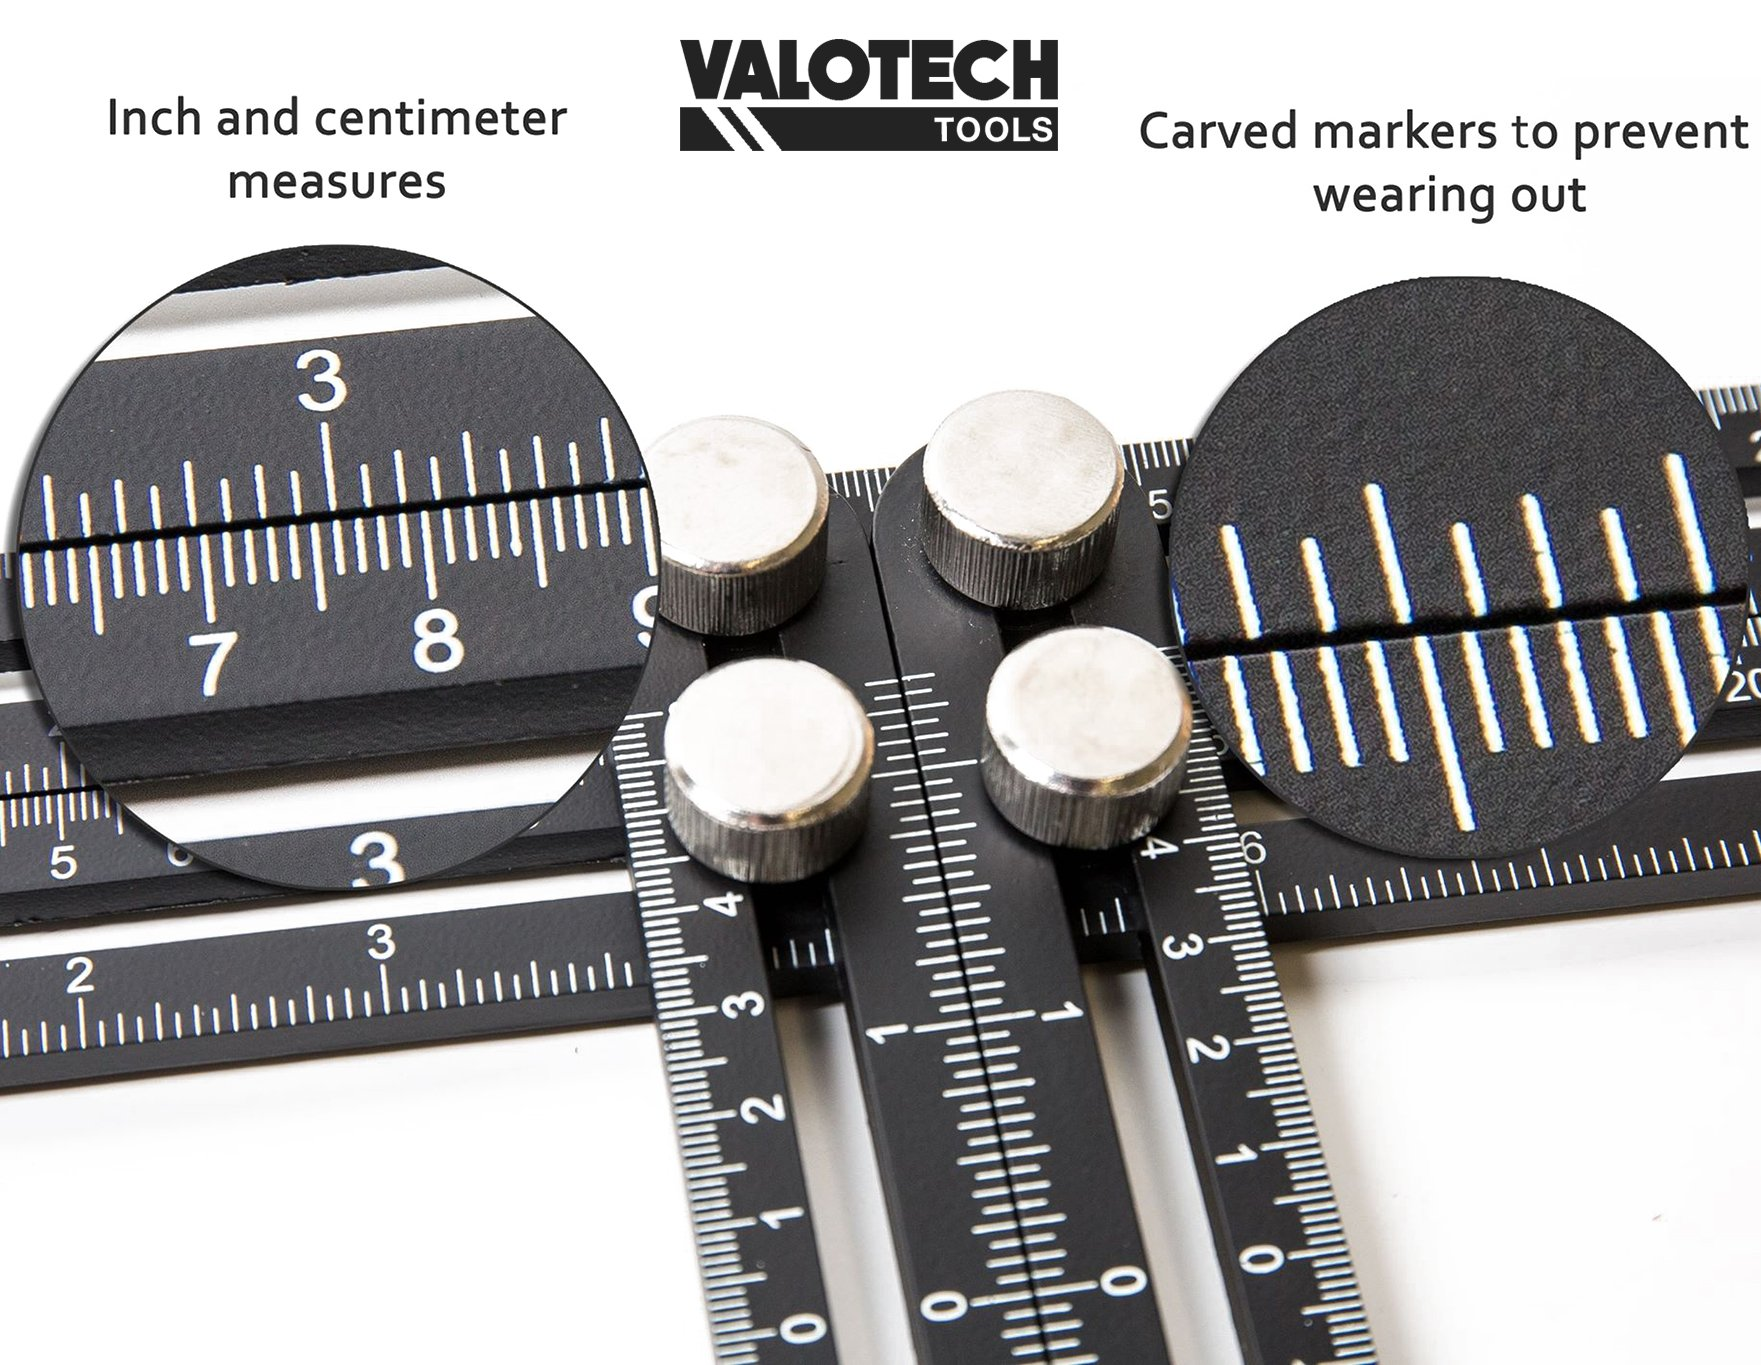 Full Metal angleizer Multi-Angle Measuring Ruler: Ultimate Template Tool for Measuring Angles – Precise Upgraded Aluminum Template Tool - for DIY, Roofers, Carpenters, Handymen -Includes Carry Pouch by Valotech (Image #2)